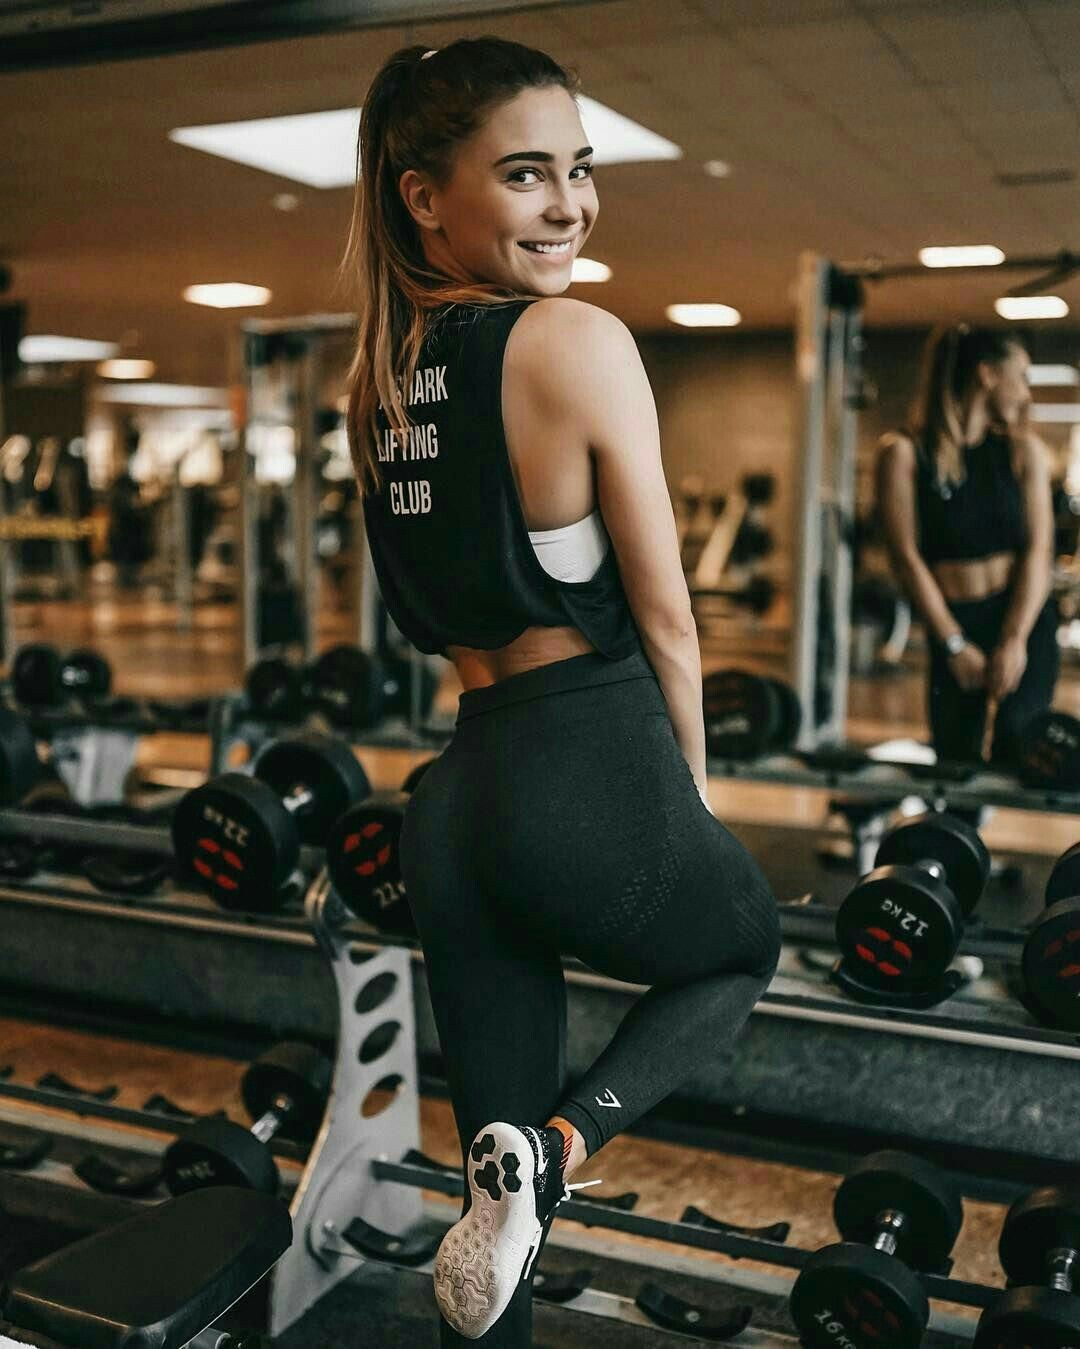 Quotemaker Shop Redbubble In 2021 Women Fitness Photography Gym Photoshoot Women Fitness Photos